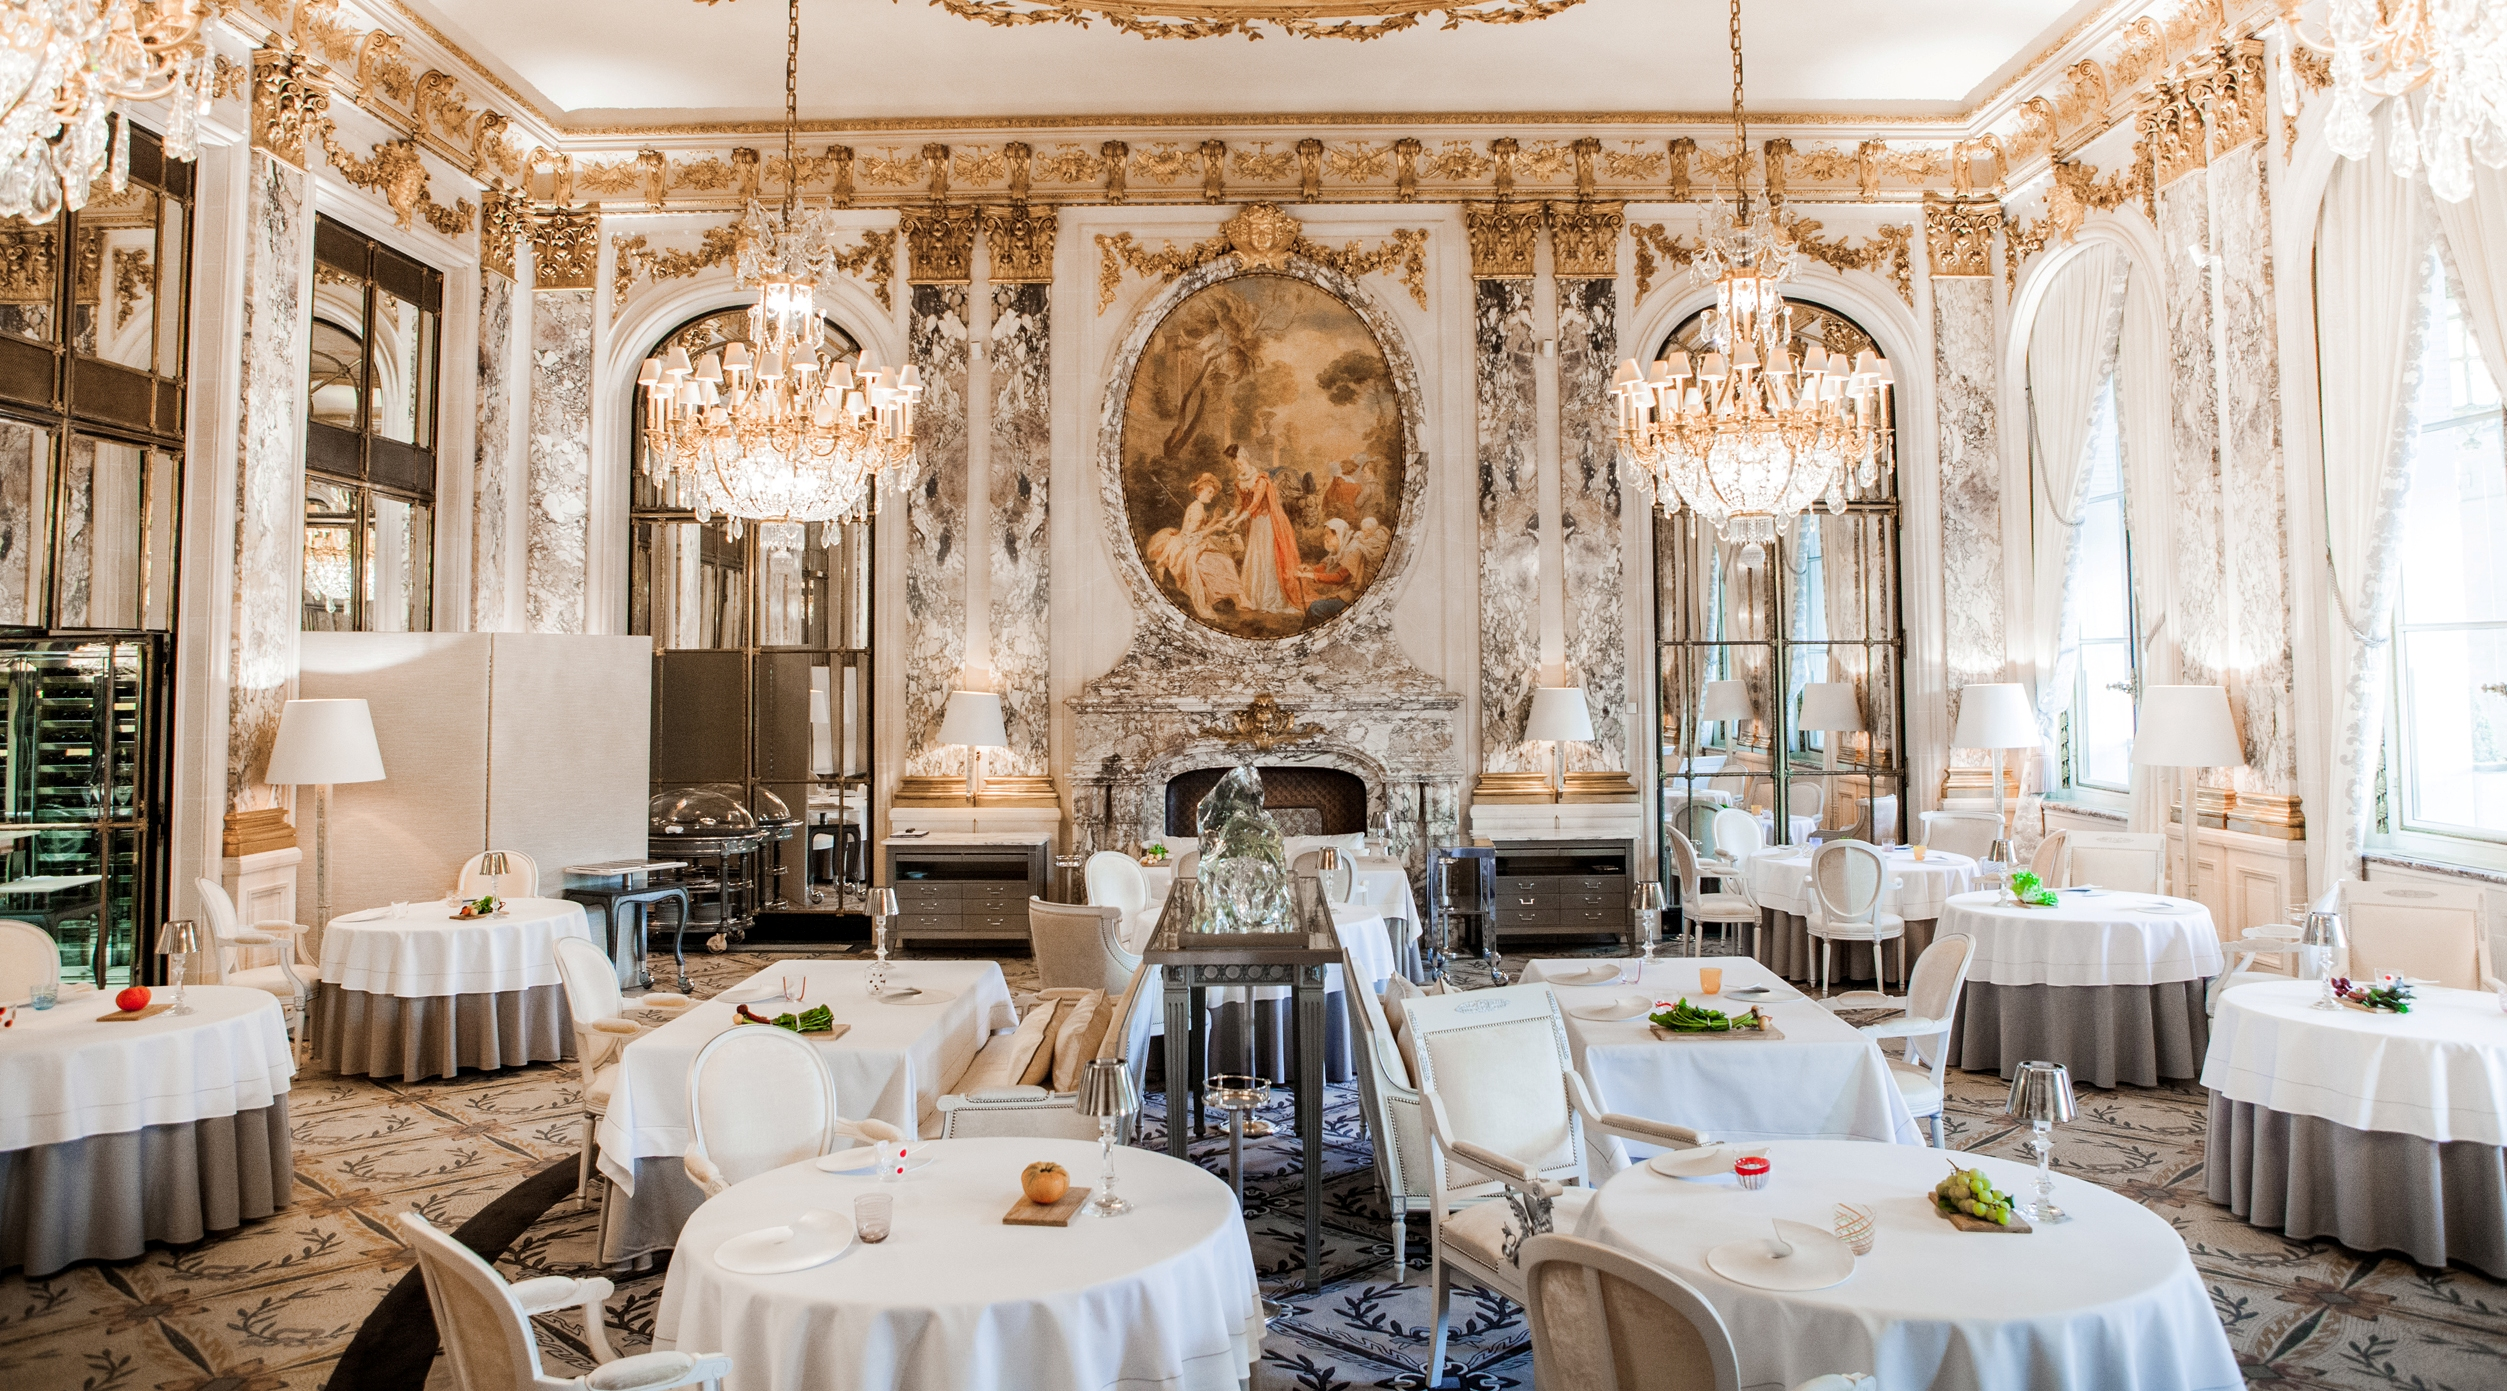 An Exceptional Dining Experience At Le Meurice A Three Star Michelin Restaurant Experiences Luxe Top Travel Blog